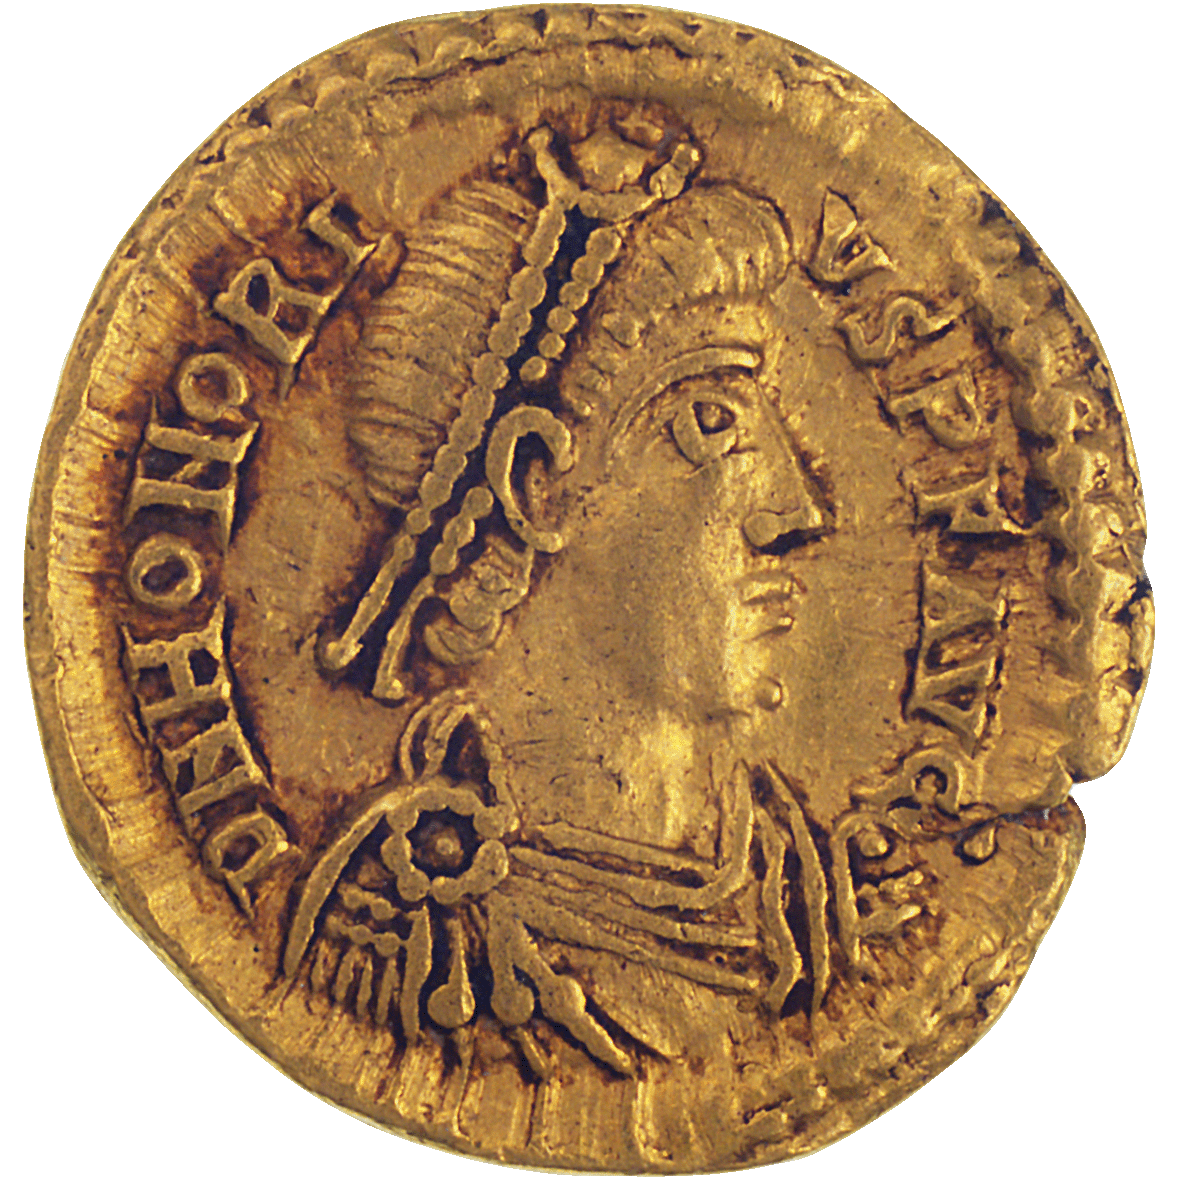 Roman Empire, Honorius, Tremissis (obverse)